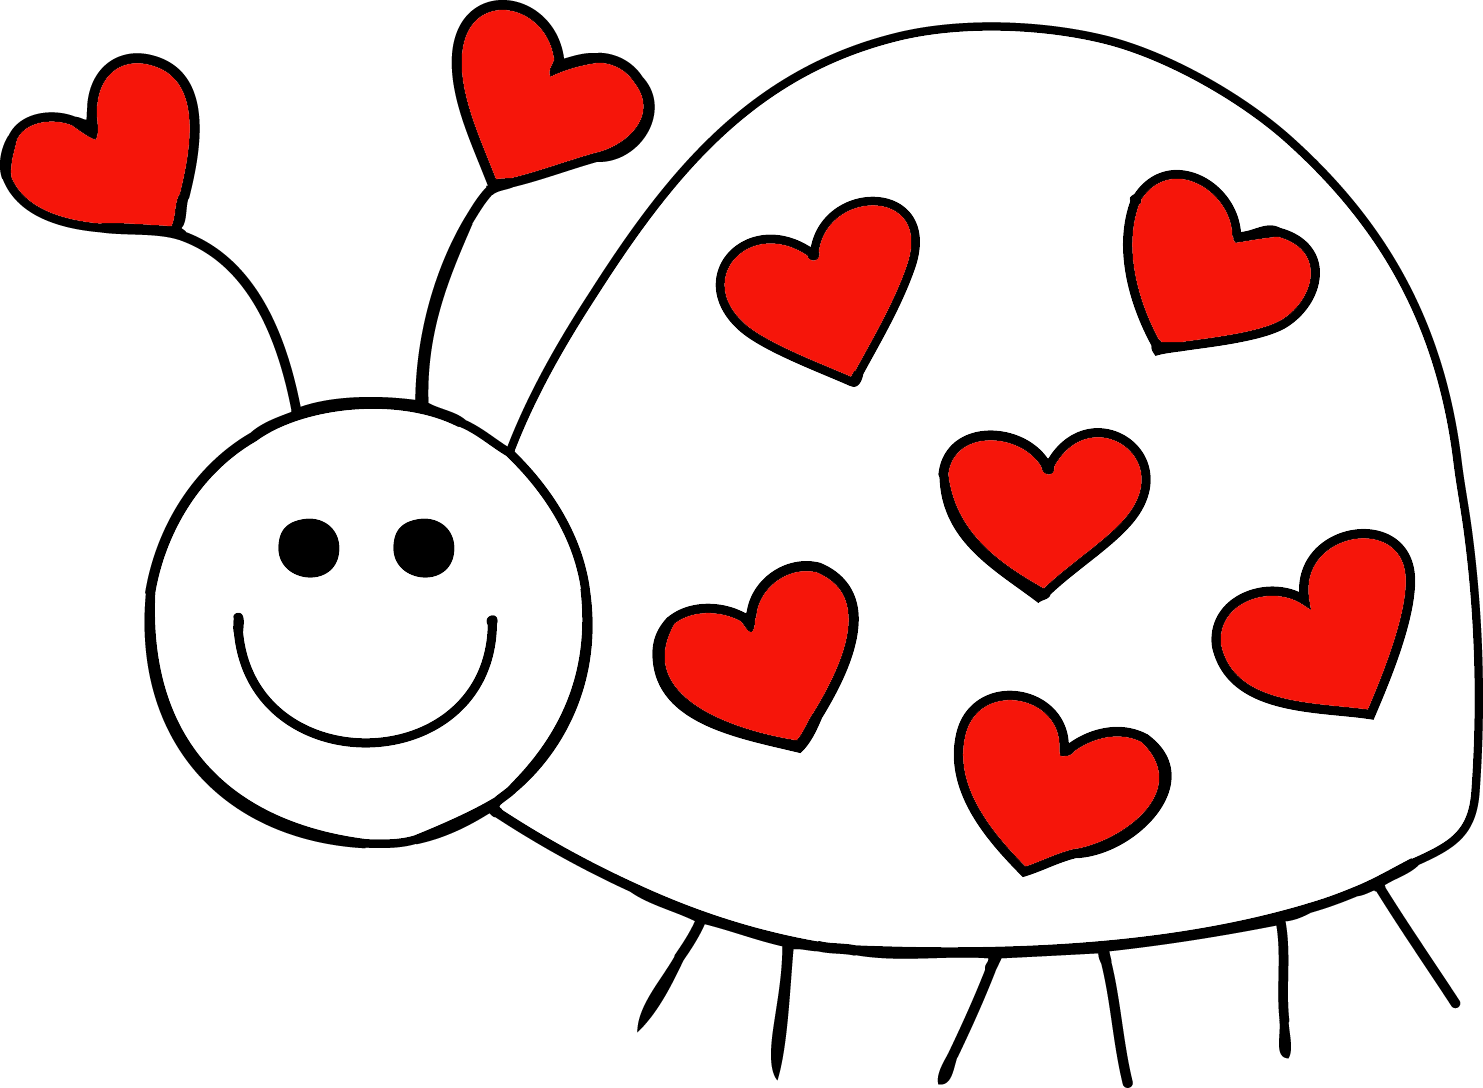 Valentine Love Bugs Cartoon Clipart - Free Clip Art Images ...